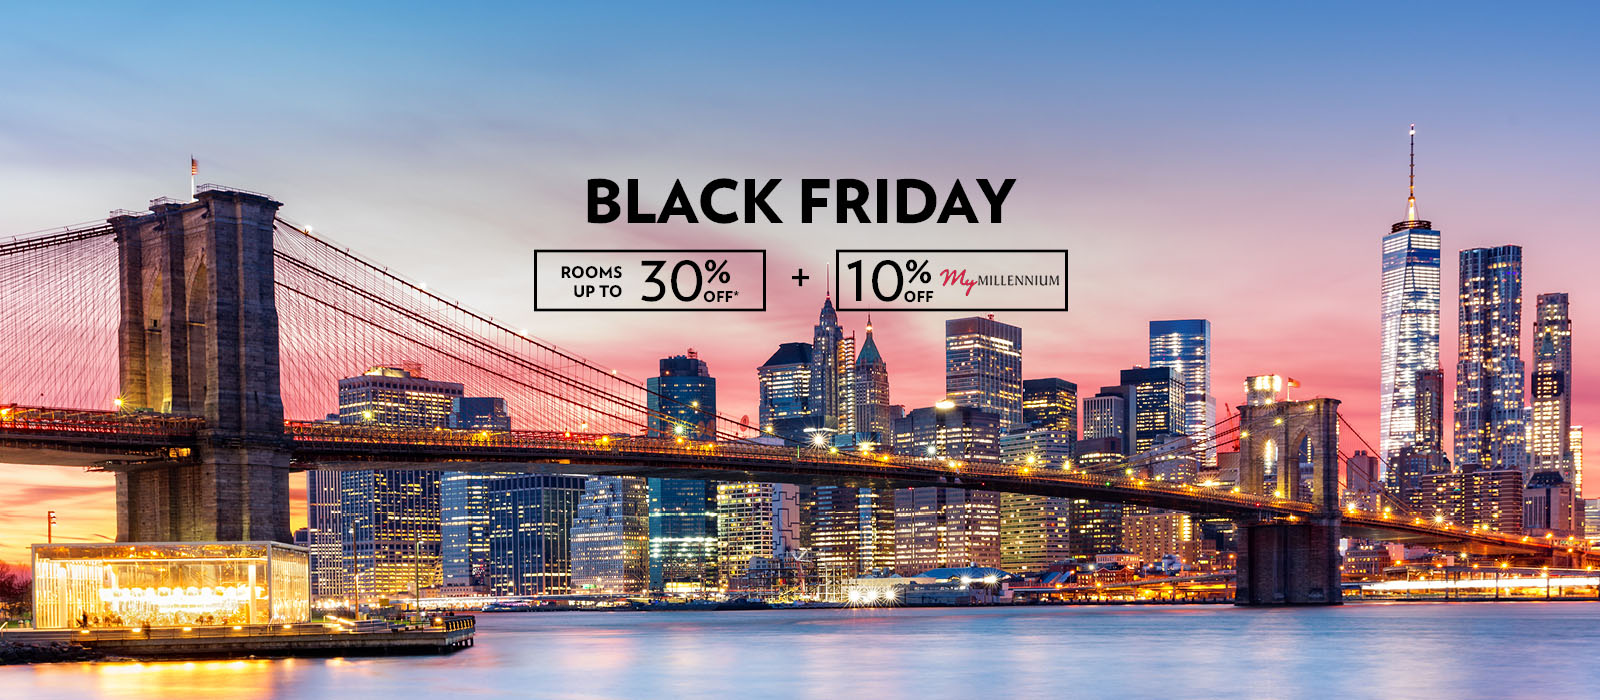 Black Friday 2020 Offer Page Image Global NYC